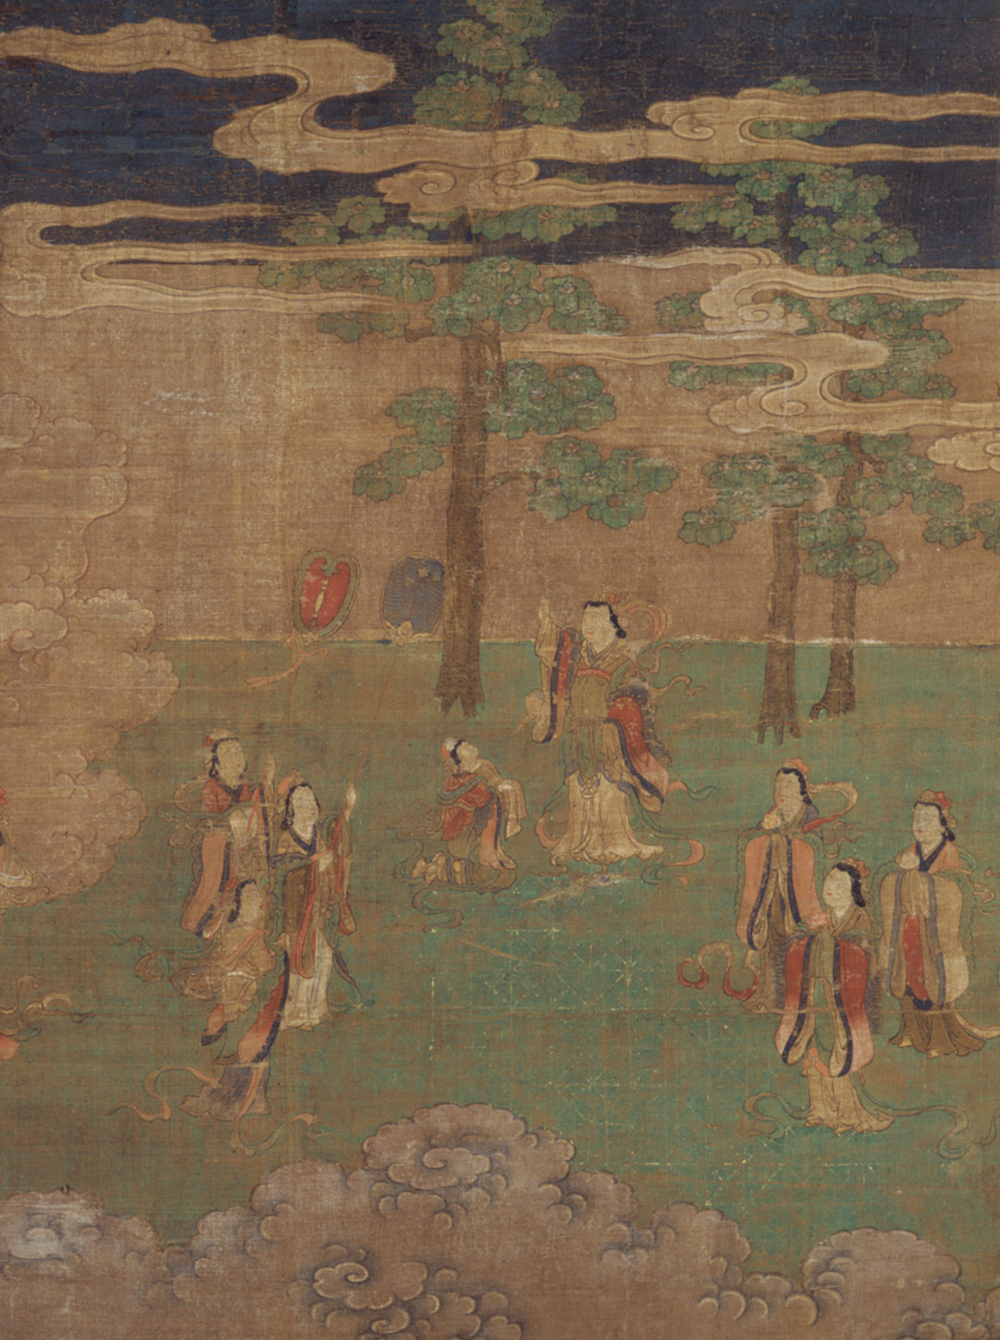 Detail from The Life of the Buddha: The Birth of the Buddha. Early 15th century CE. Muromachi. The Met.